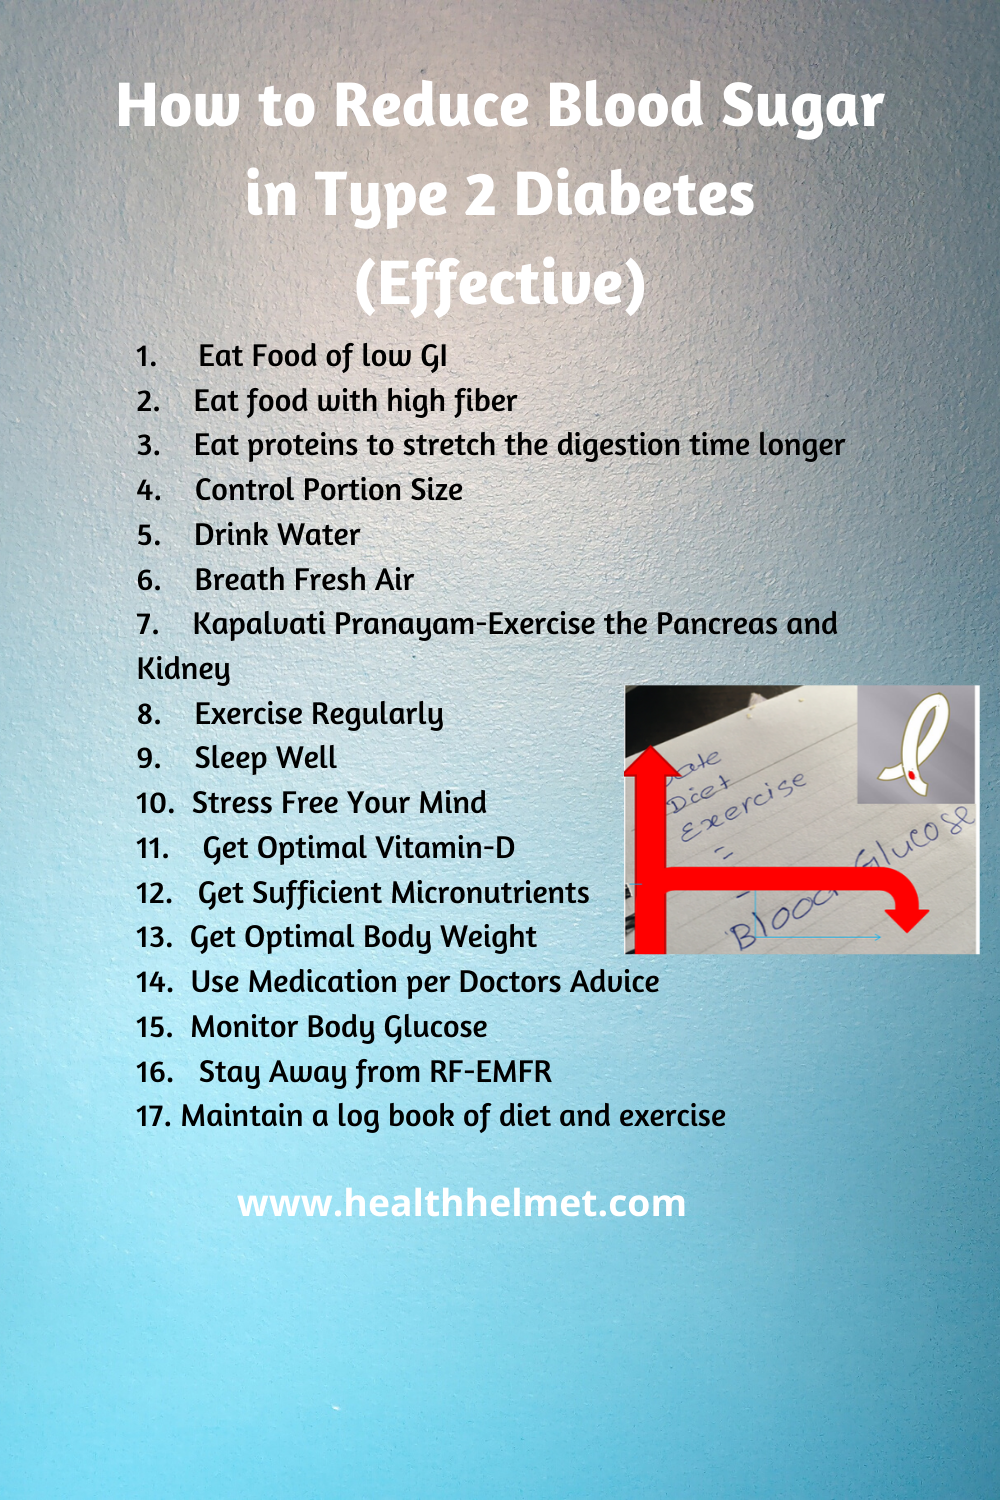 How-to-reduce-blood-sugar